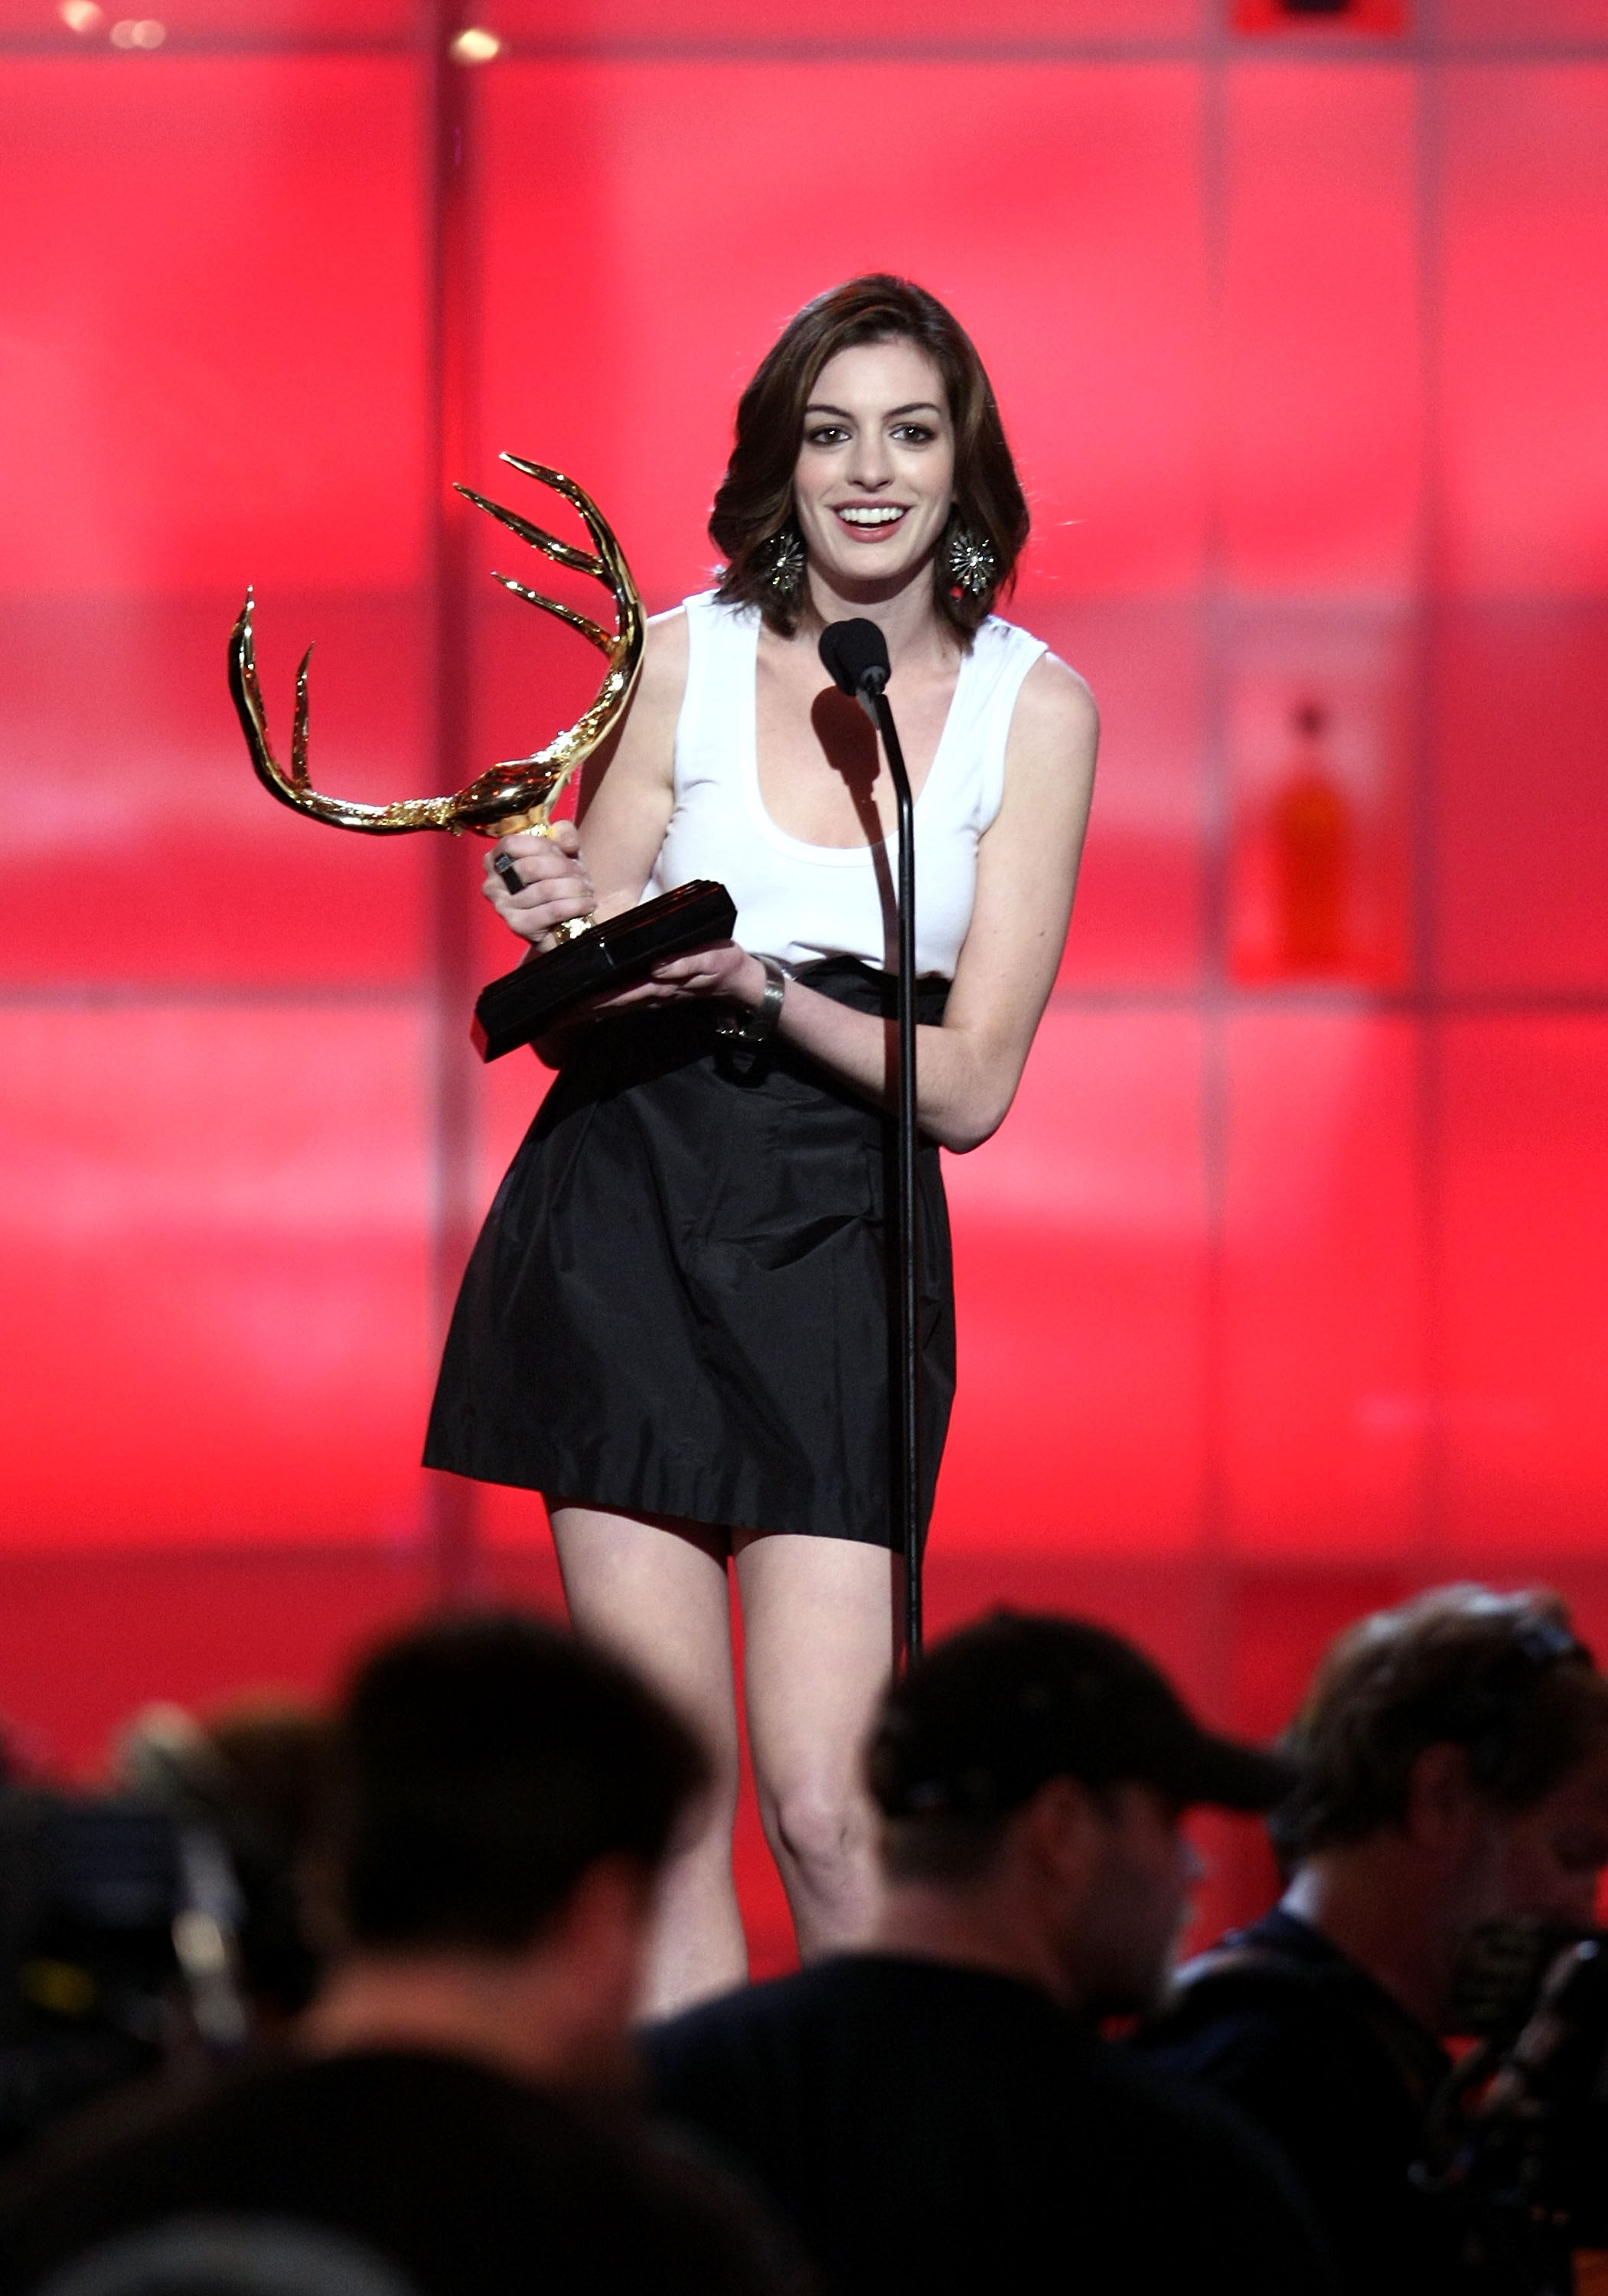 23215_Celebutopia-Anne_Hathaway-Spike_TV5s_2nd_Annual_Guys_Choice_Awards_Show-01_122_449lo.jpg